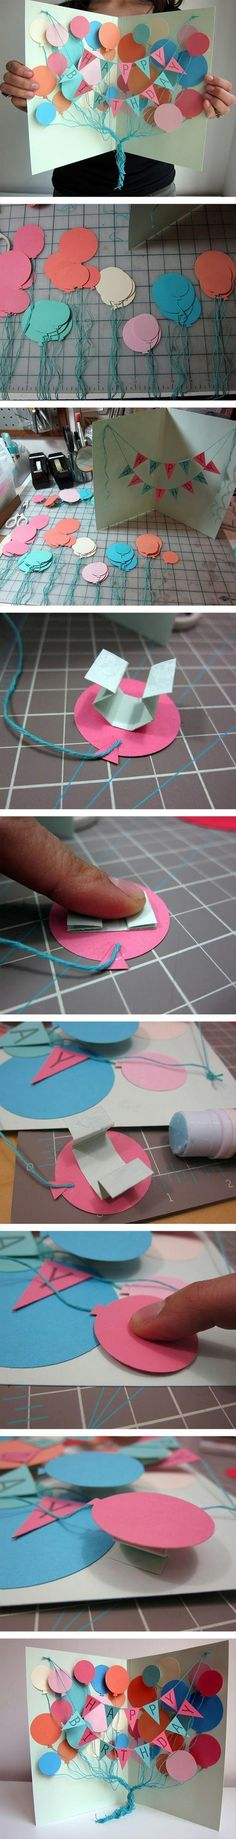 Great card idea! Super cute and simple to create. www.scraptc.org | found on: imgur.com